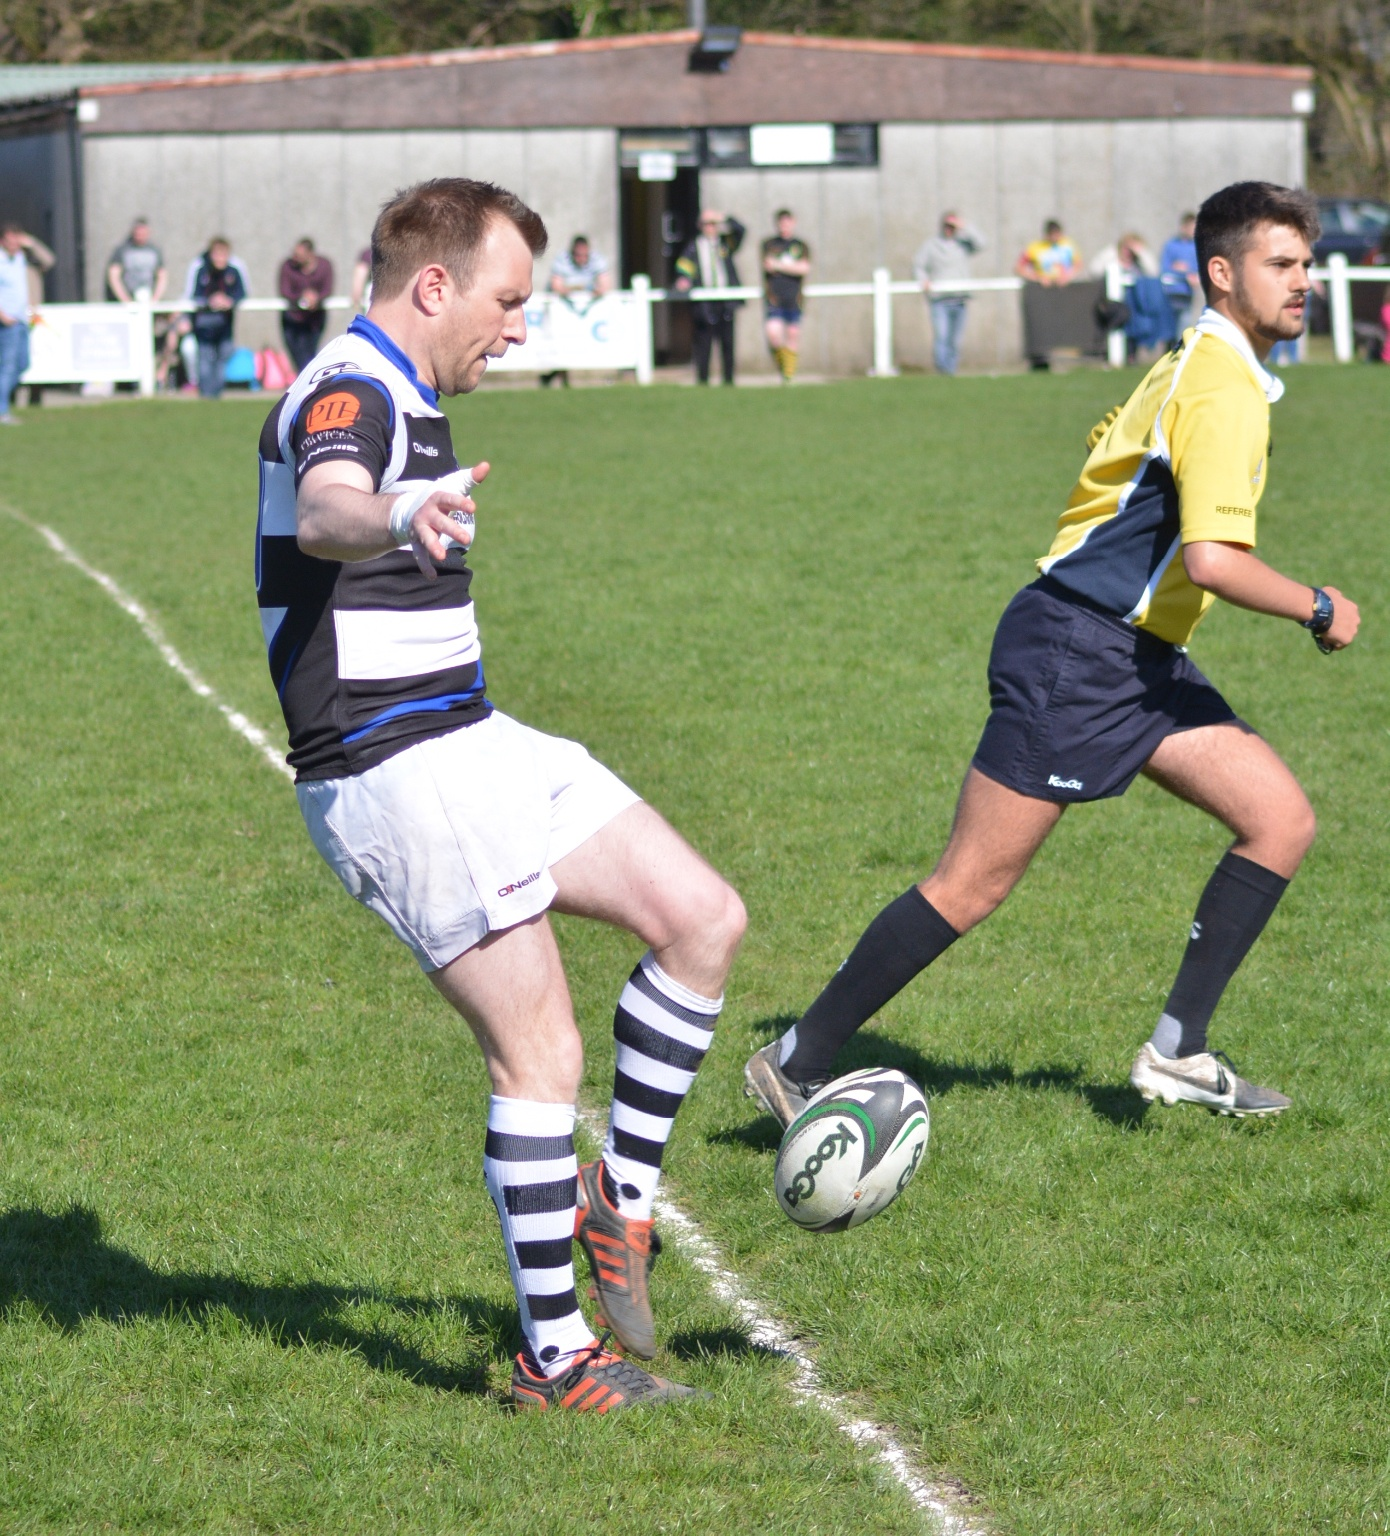 Old Rugby League Games: TRAFFORD MV Vs OLD SALIANS RUGBY MATCH